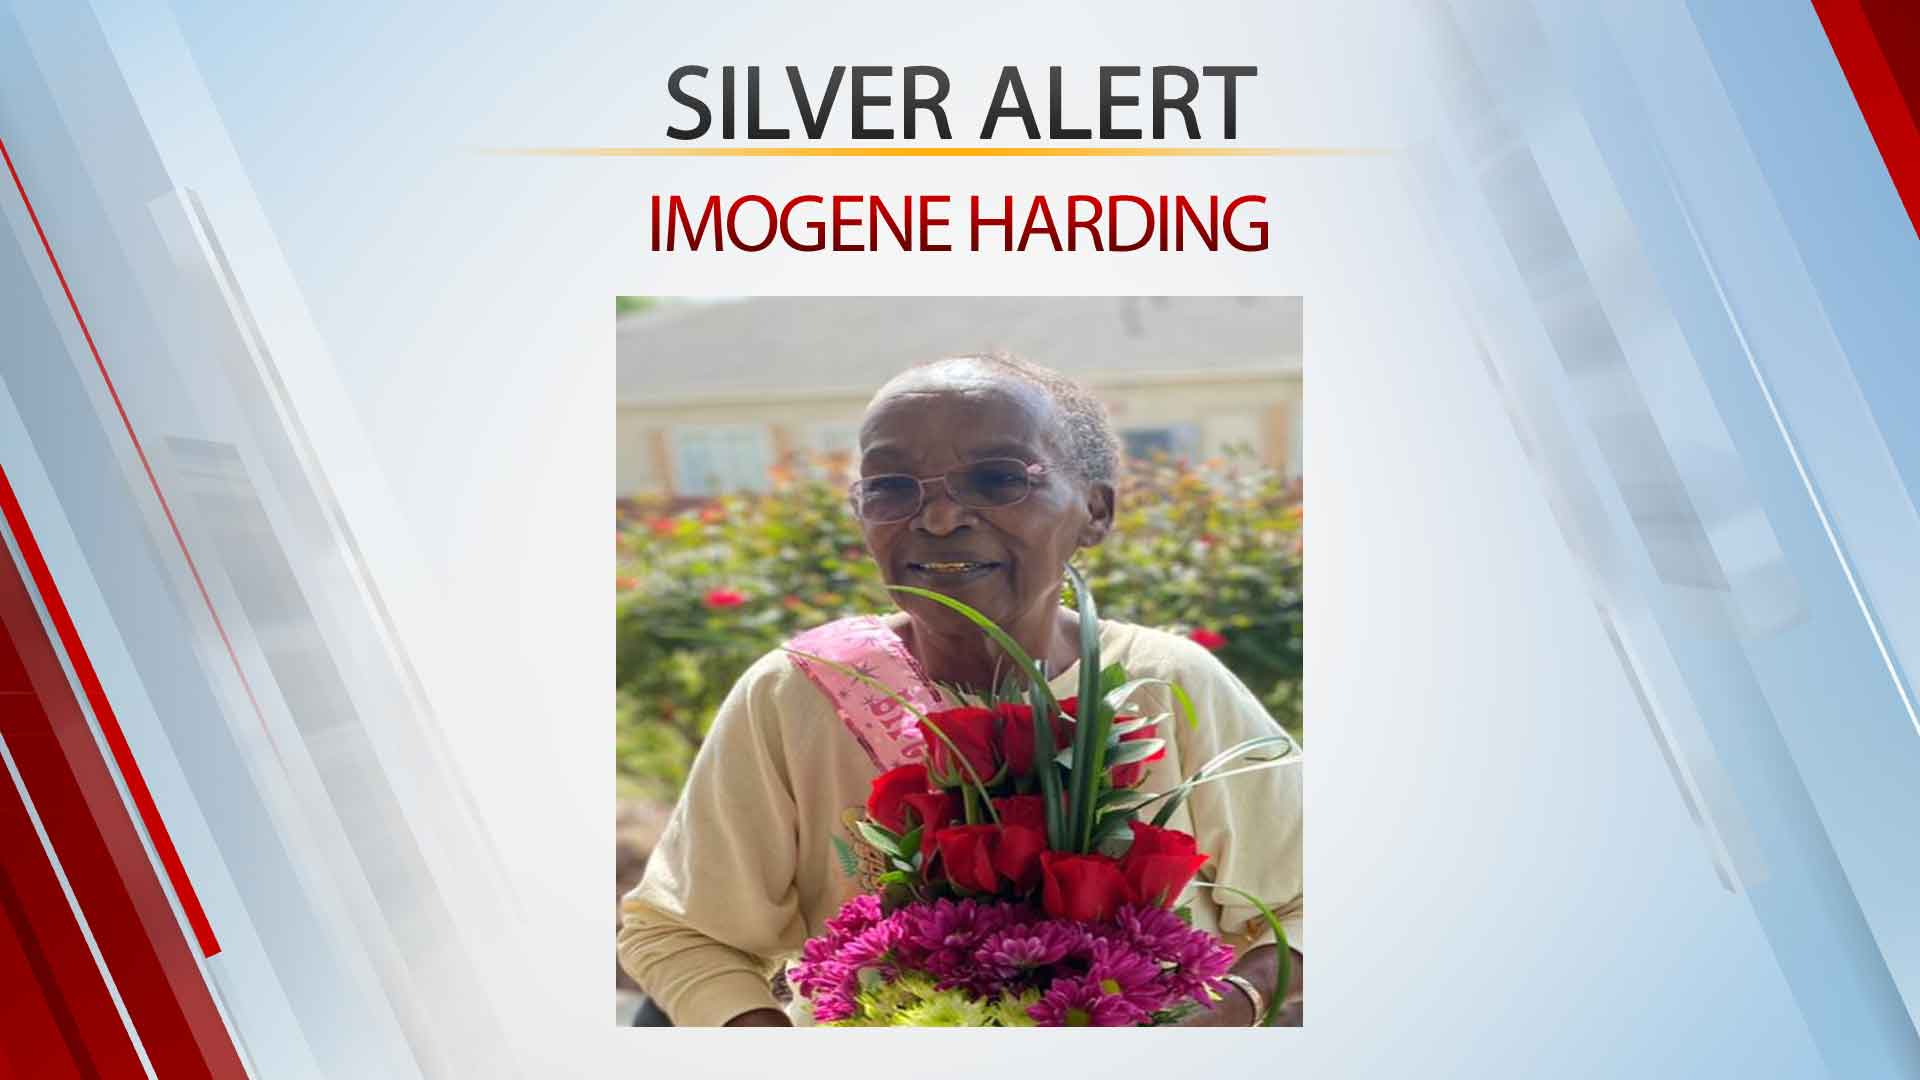 Tulsa Police: Silver Alert Issued For Woman With Memory Issues